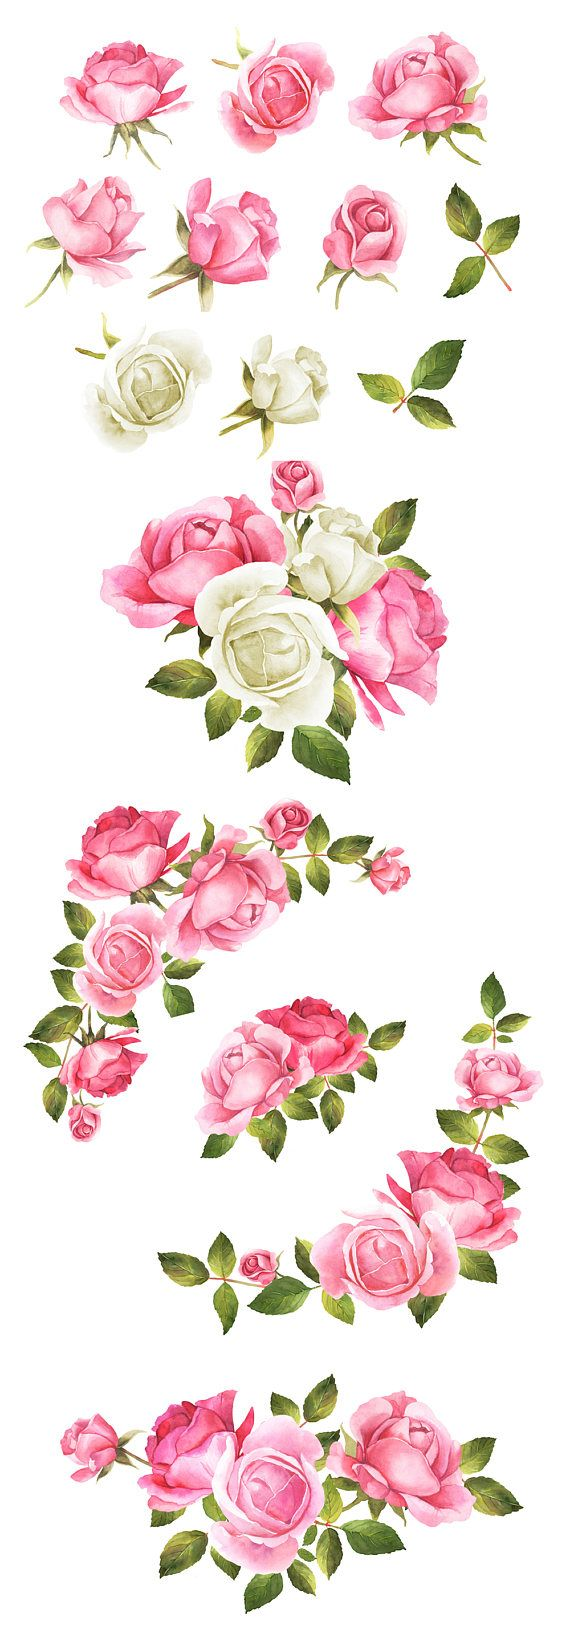 White and pink roses watercolor illustration clip art. This bundle consists of 1…